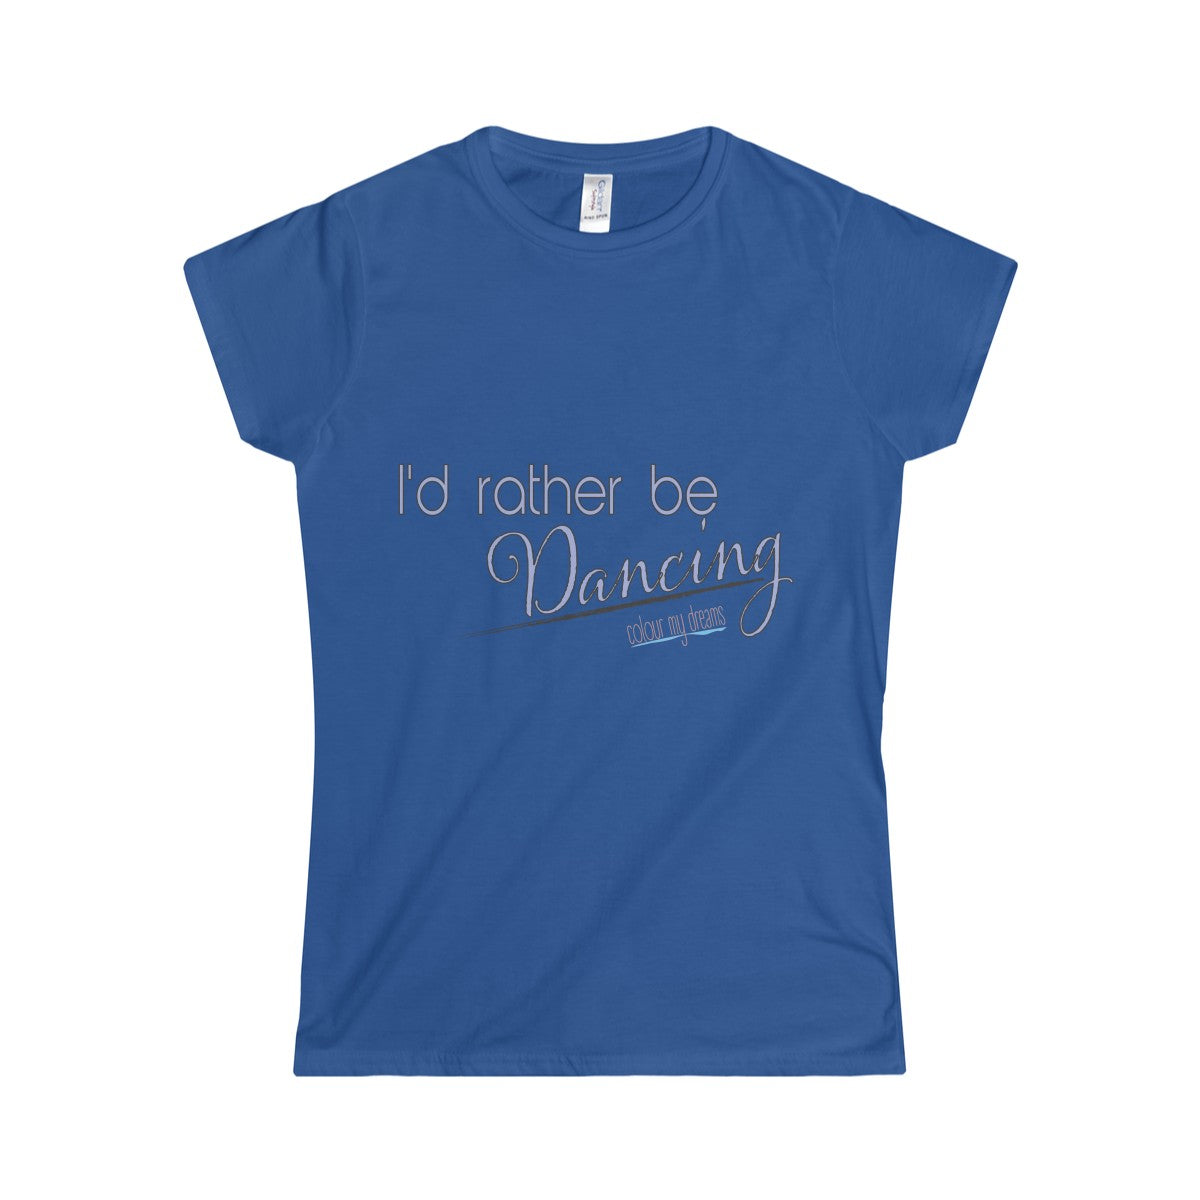 Women's Softstyle T-Shirt - I'd Rather Be Dancing